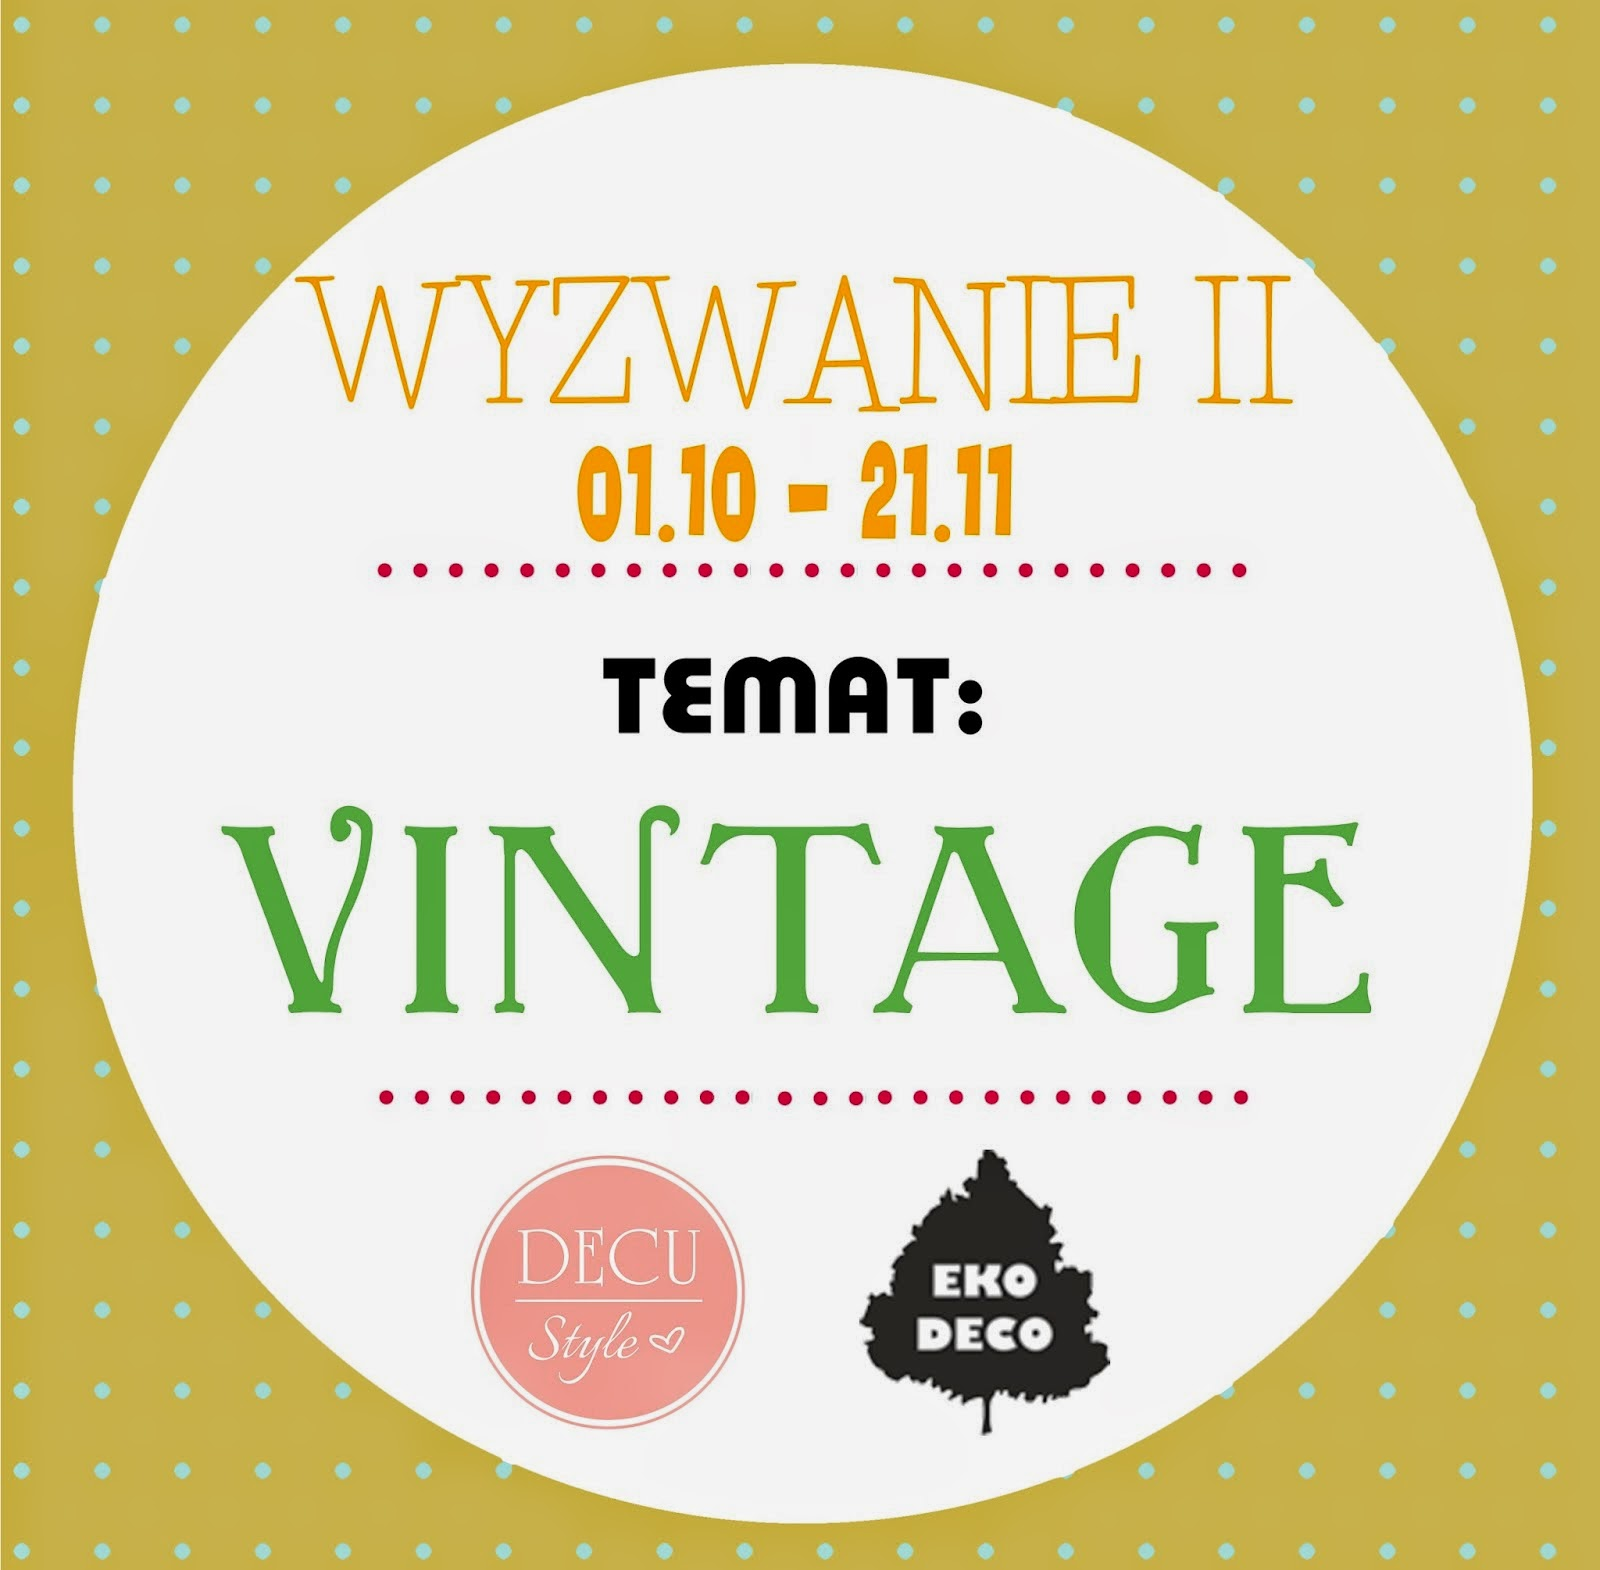 http://decustyle.blogspot.com/2014/10/wyzwanie-ii-vintage.html#comment-form